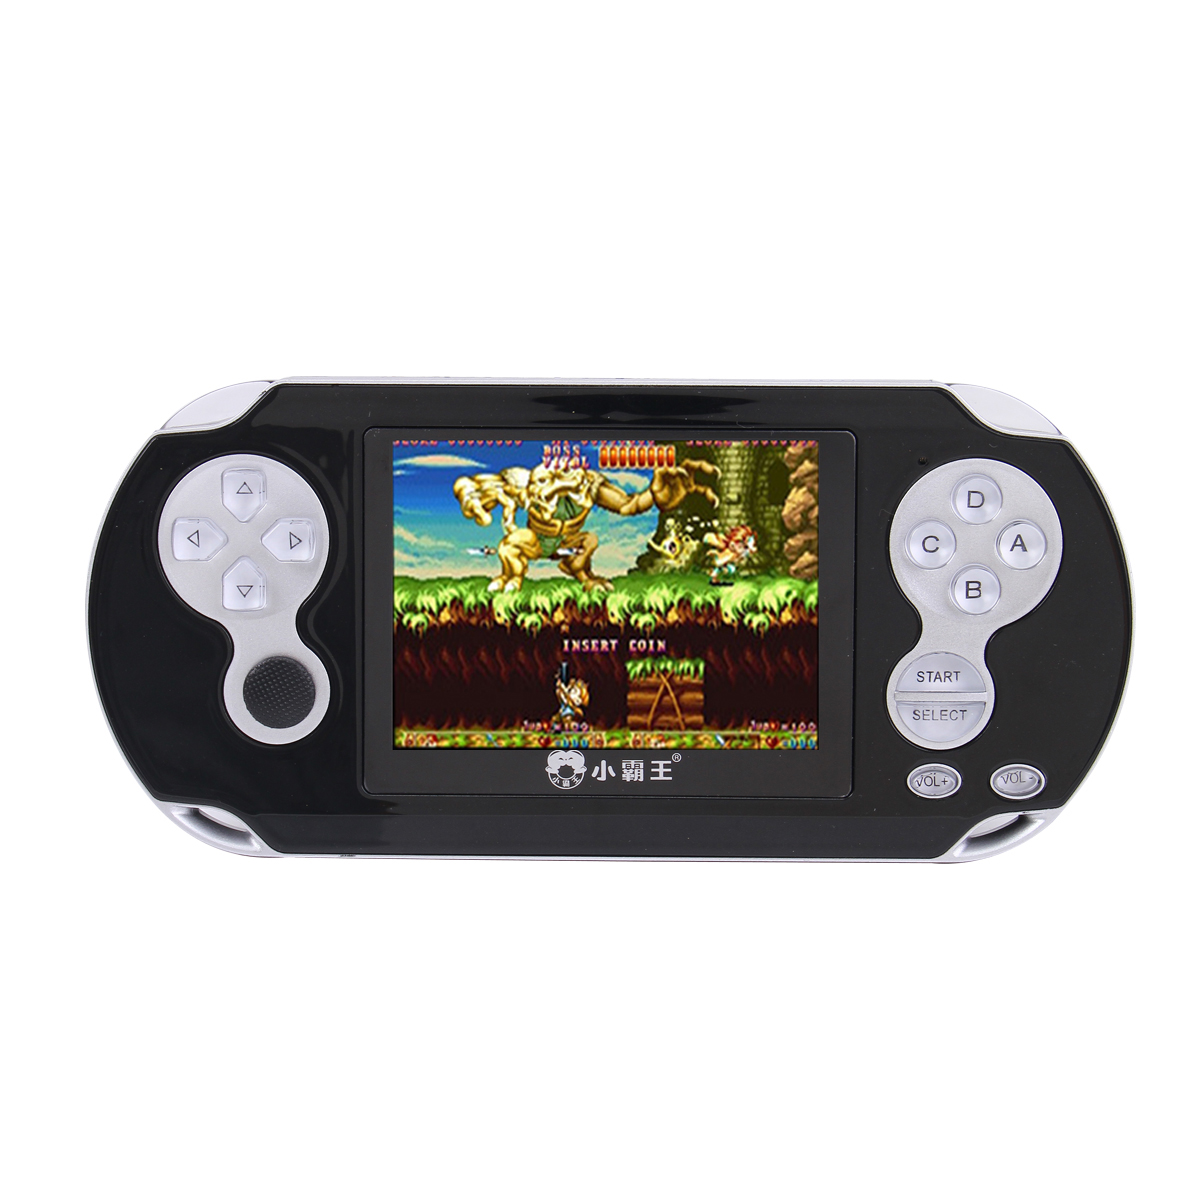 Subor RS-94 2.8 Inch Vintage Handheld Video Game Console Built-in 1117 Games MP4 Player